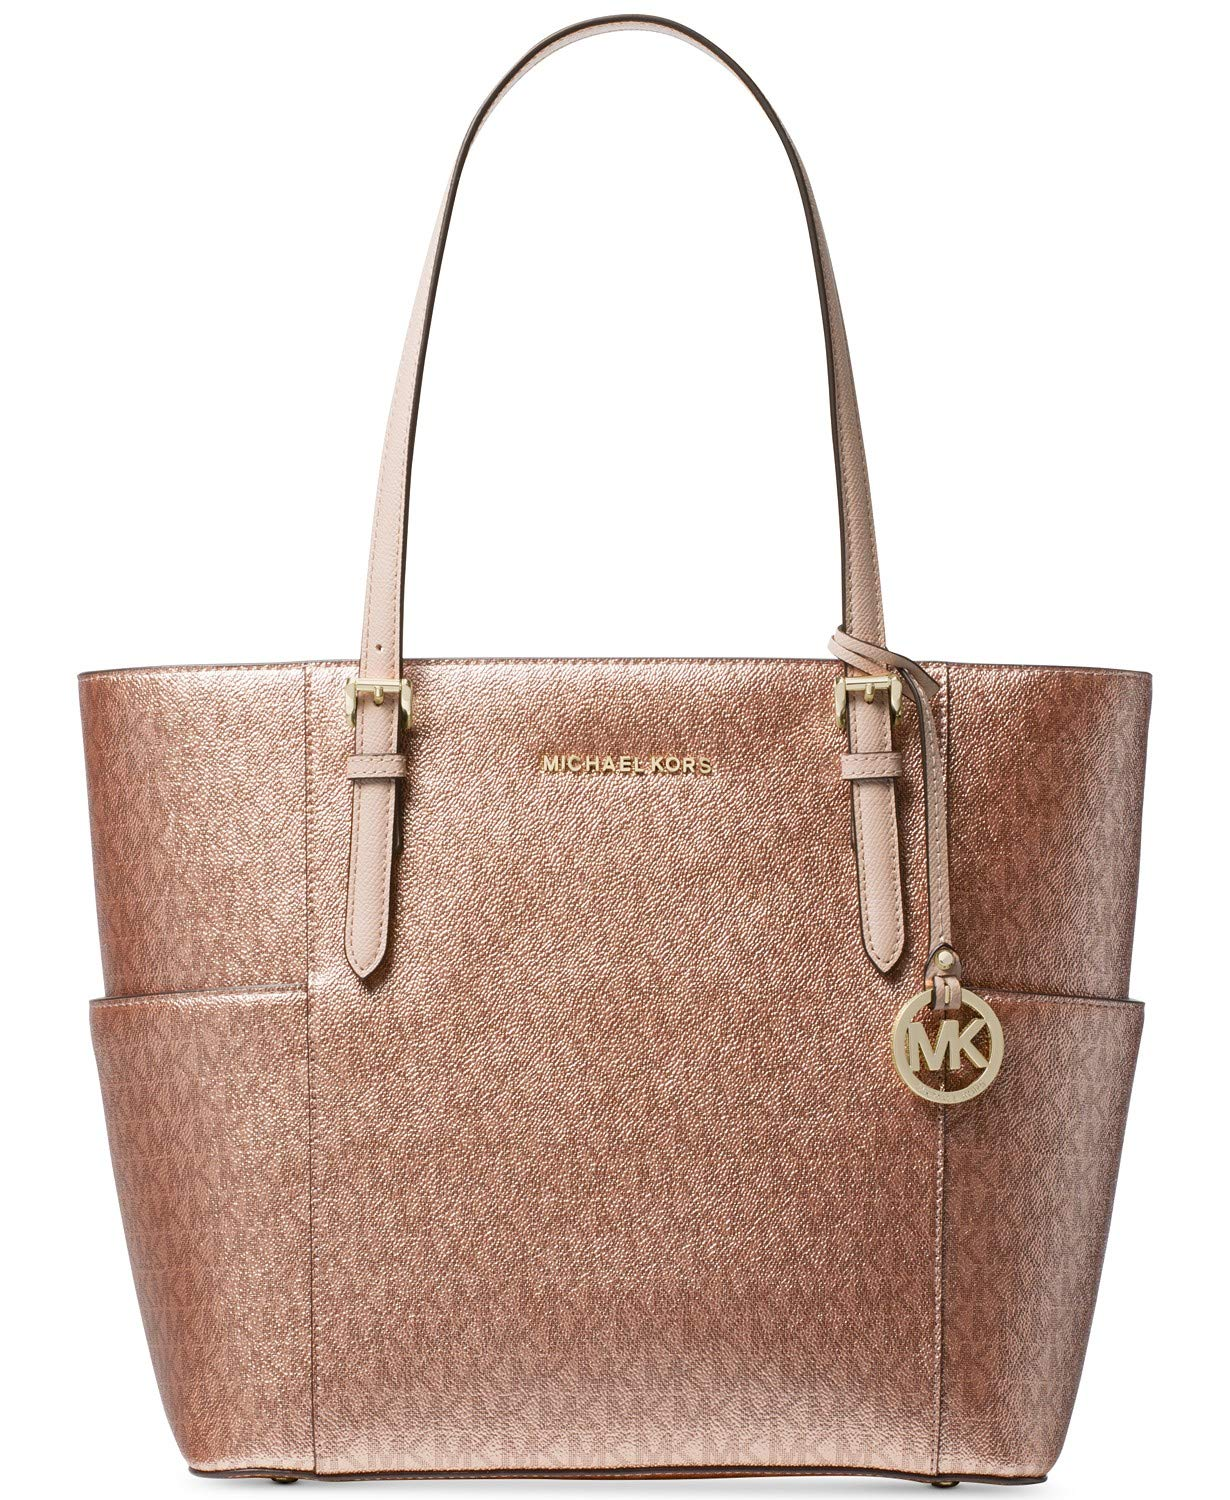 24ca27999a0b Amazon.com: Michael Kors Women's Jet Set Travel Small Logo Tote Bag (Soft  Pink/Rose Gold): Cell Phones & Accessories